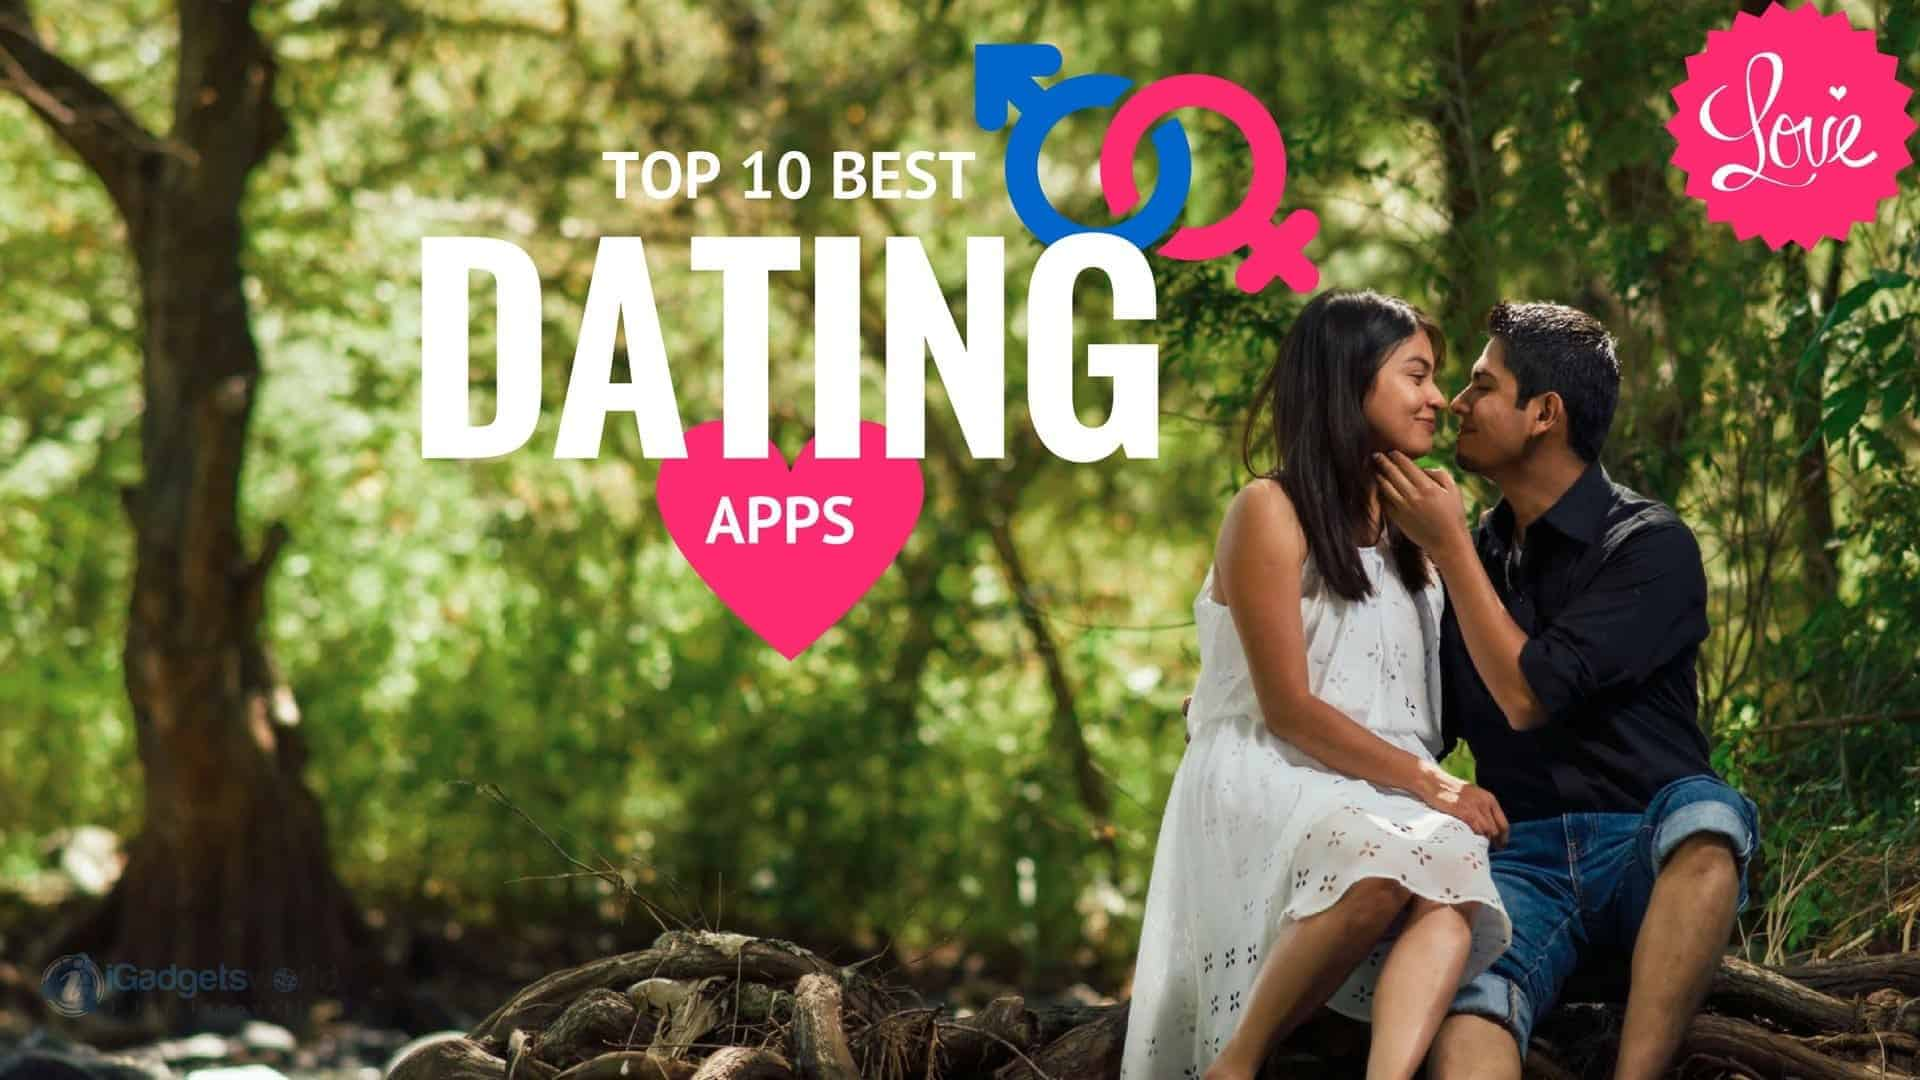 What are the top dating apps